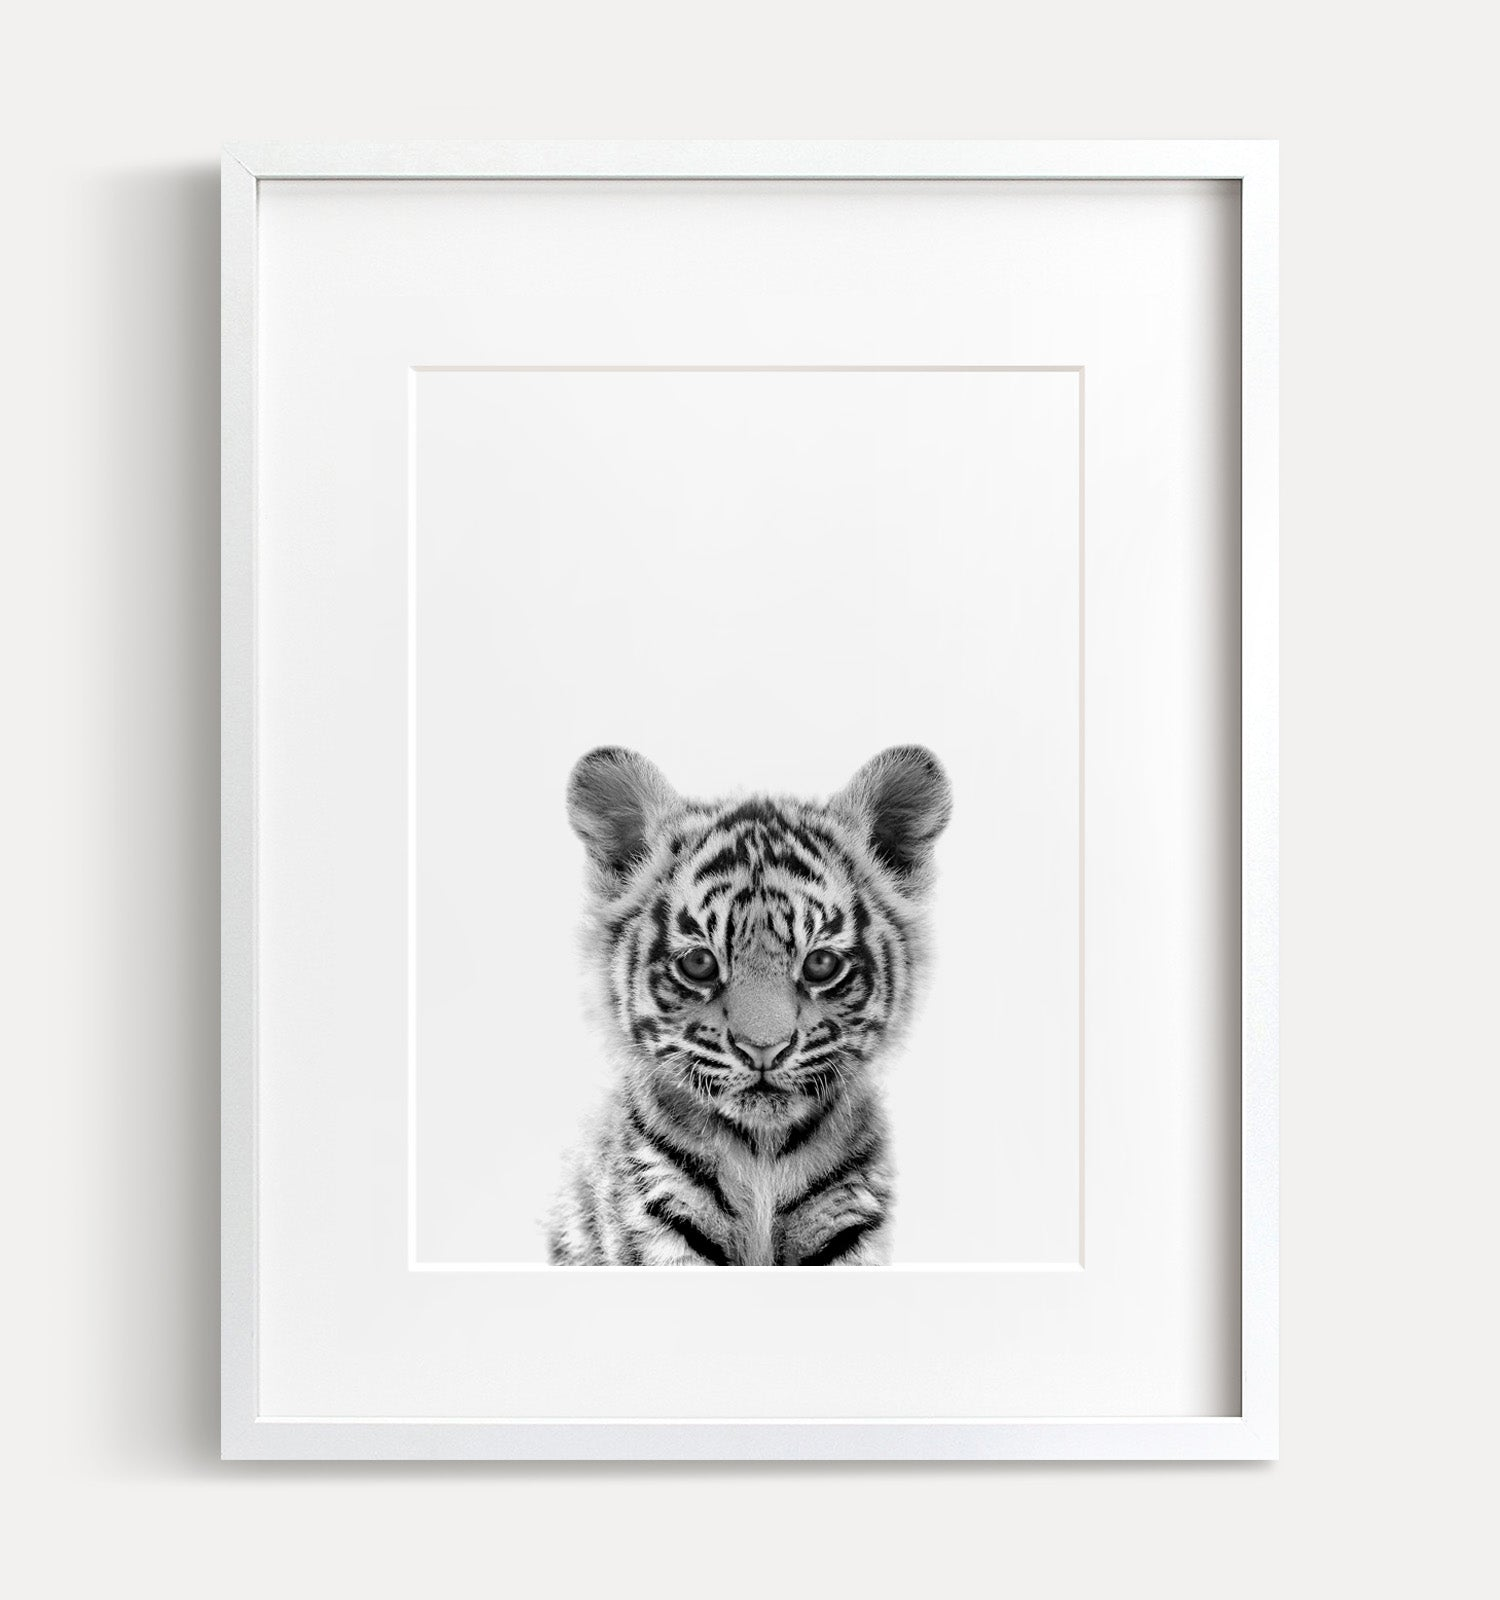 Baby Tiger Printable Art - Black and White